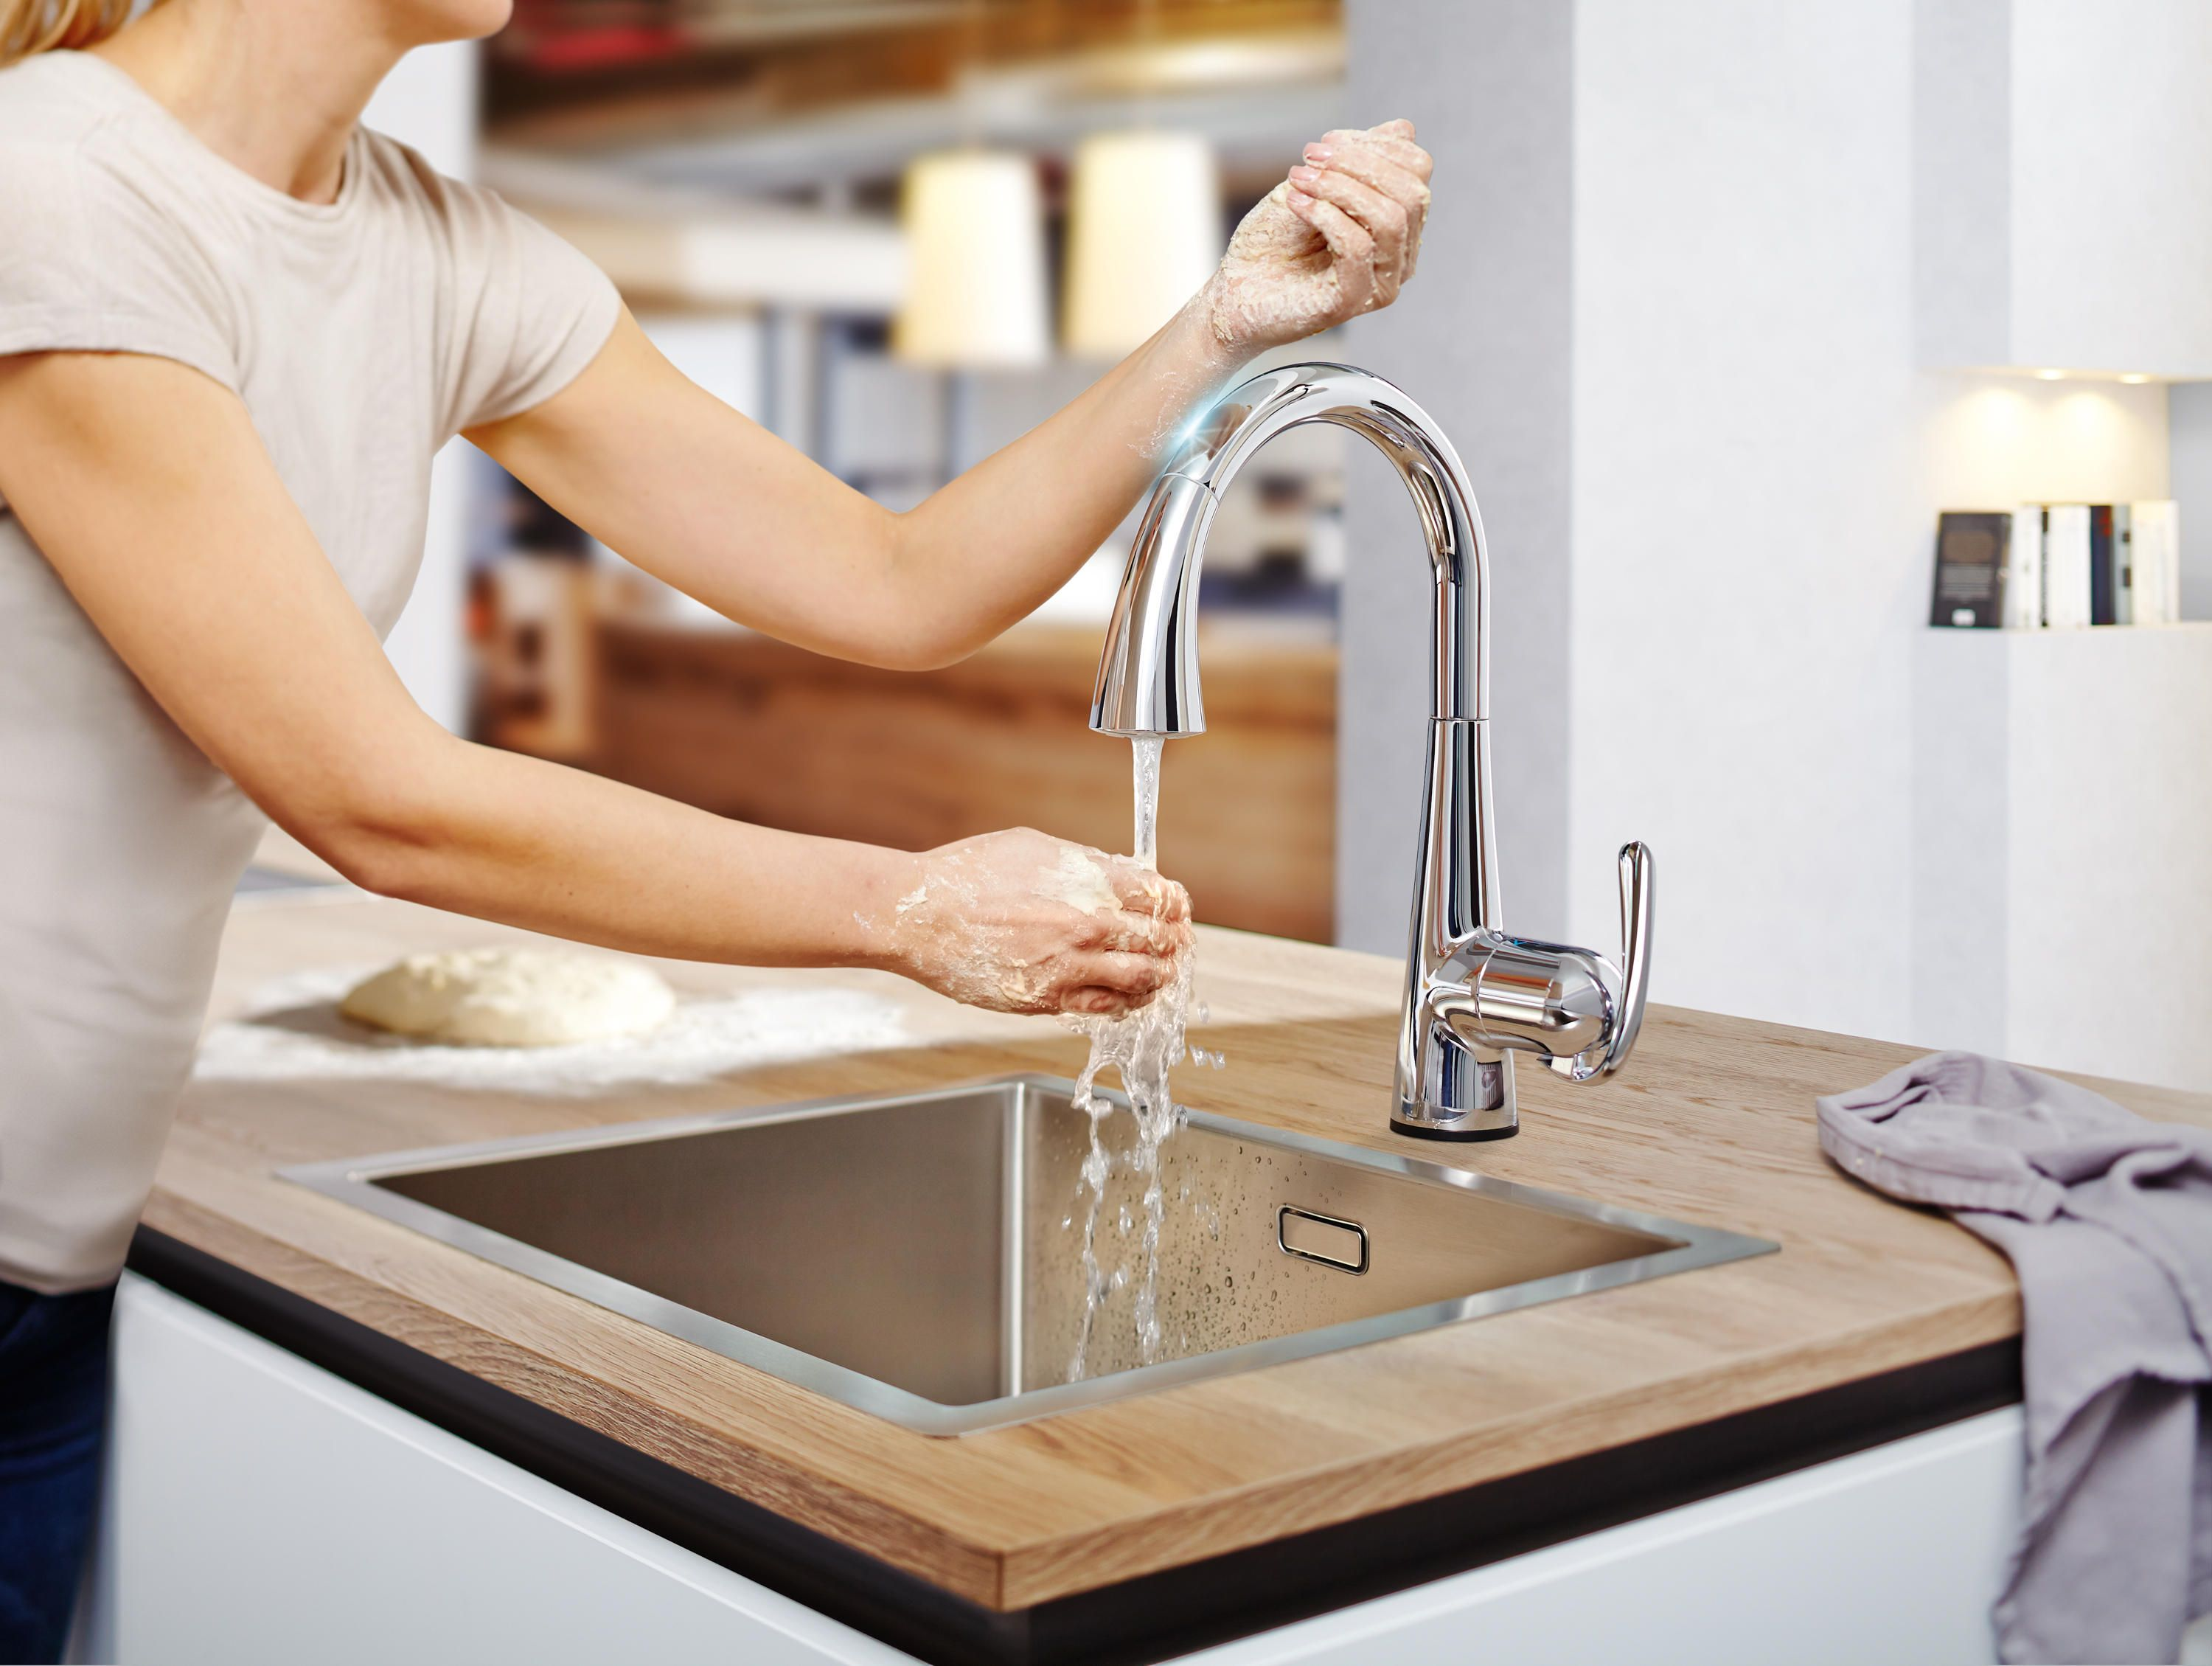 Use GROHE's Easy Touch Technology to